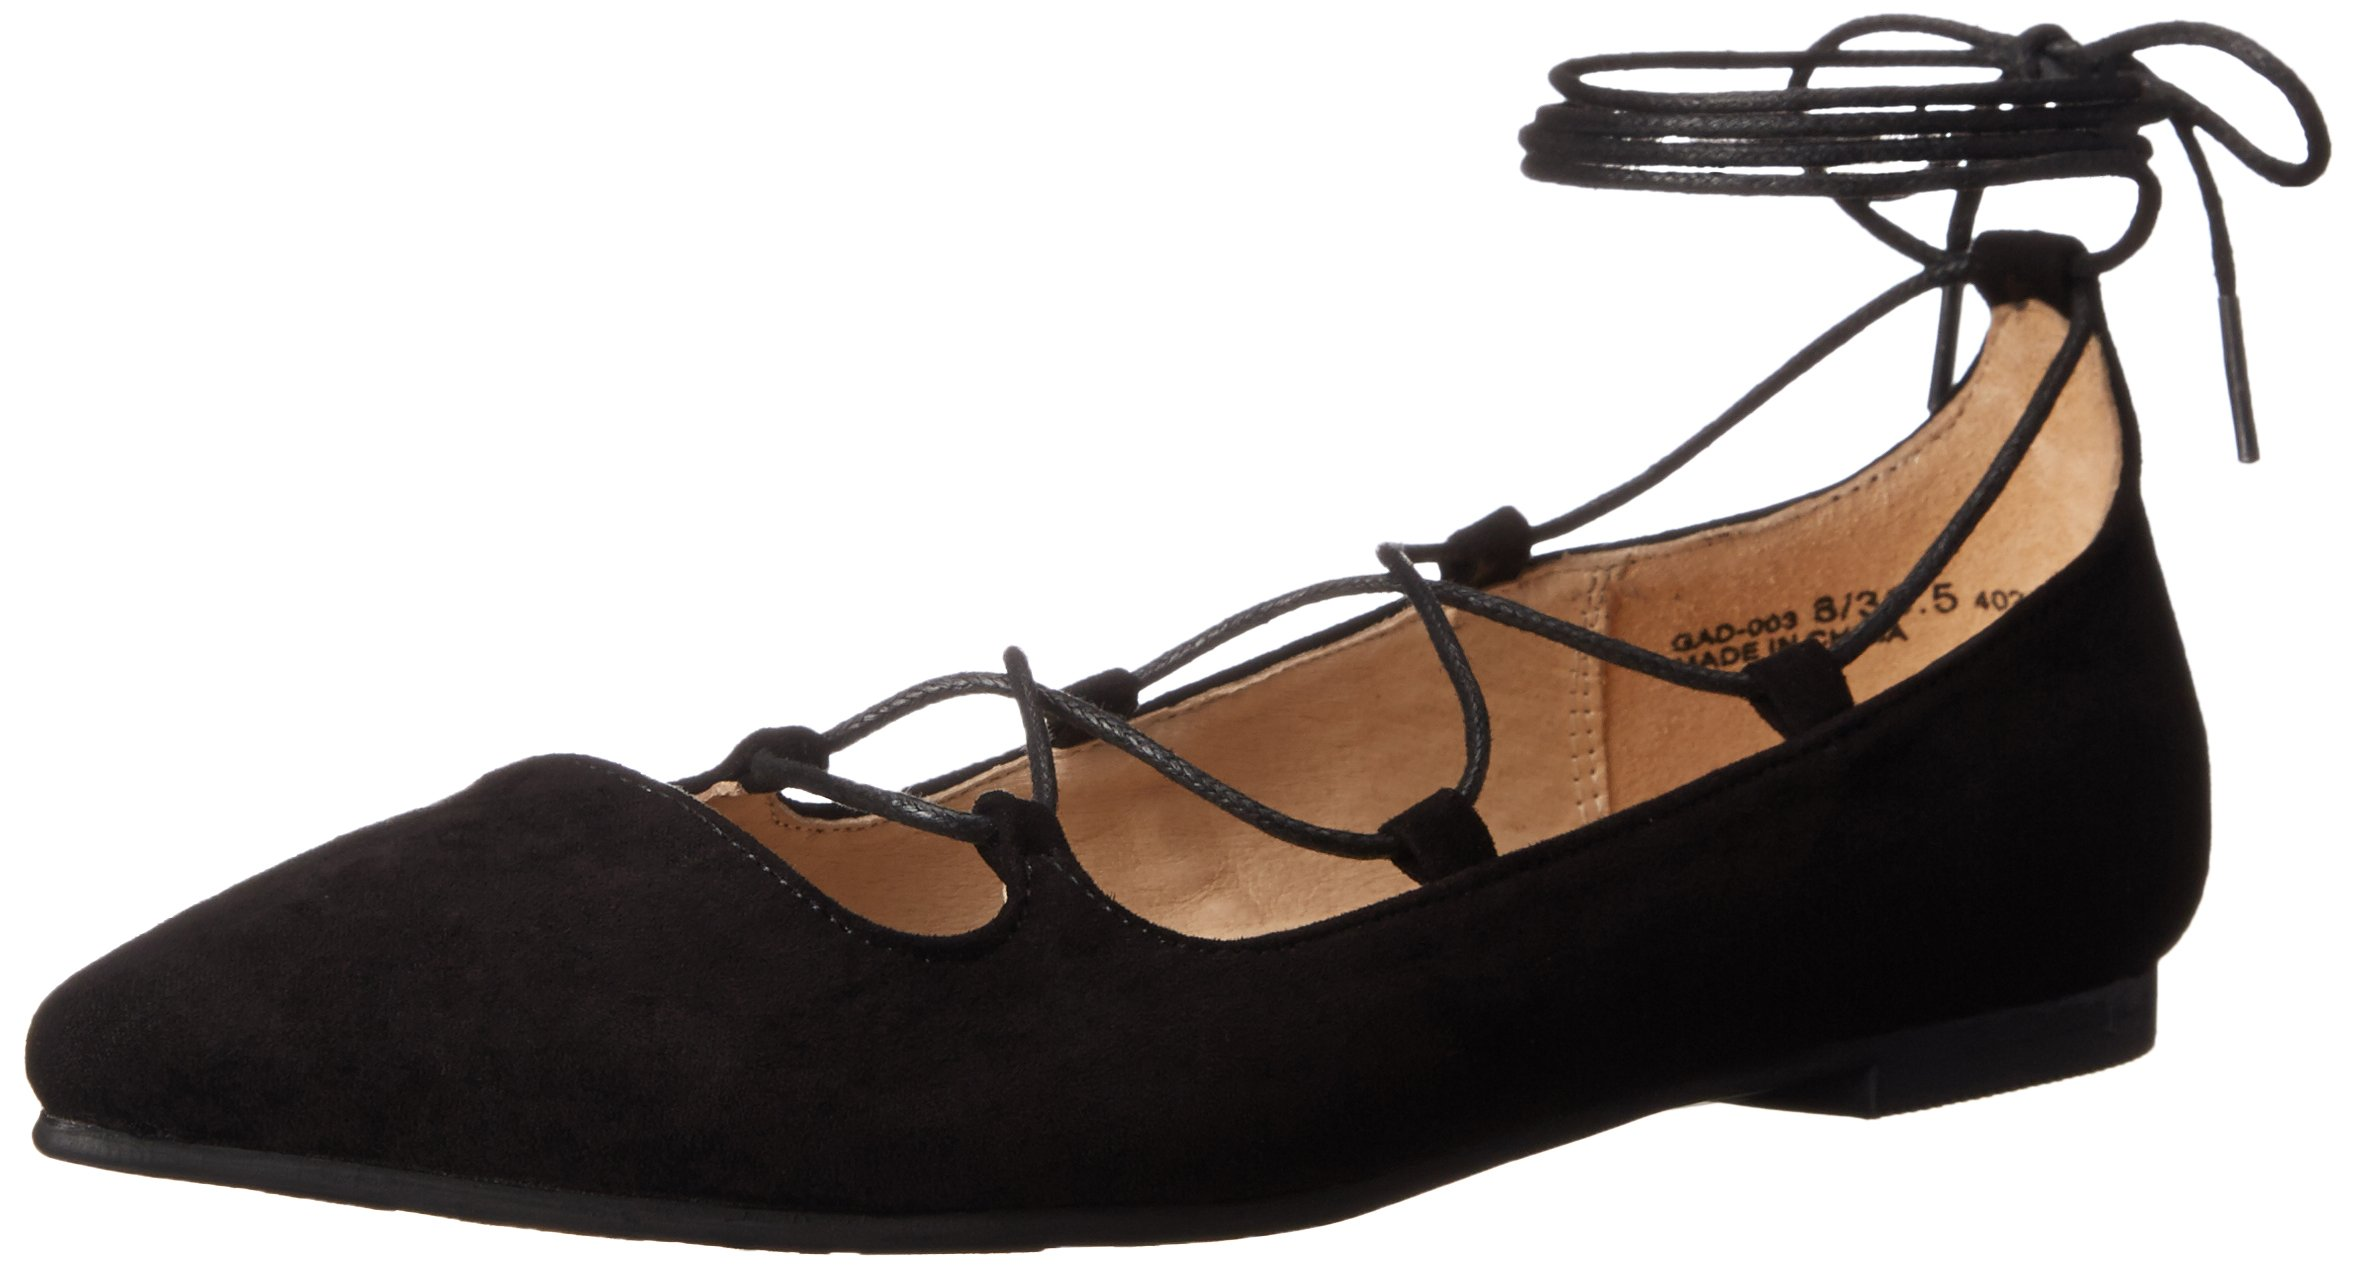 Chinese Laundry Women's Endless Summer Ghillie Flat, Black Suede, 10 M US